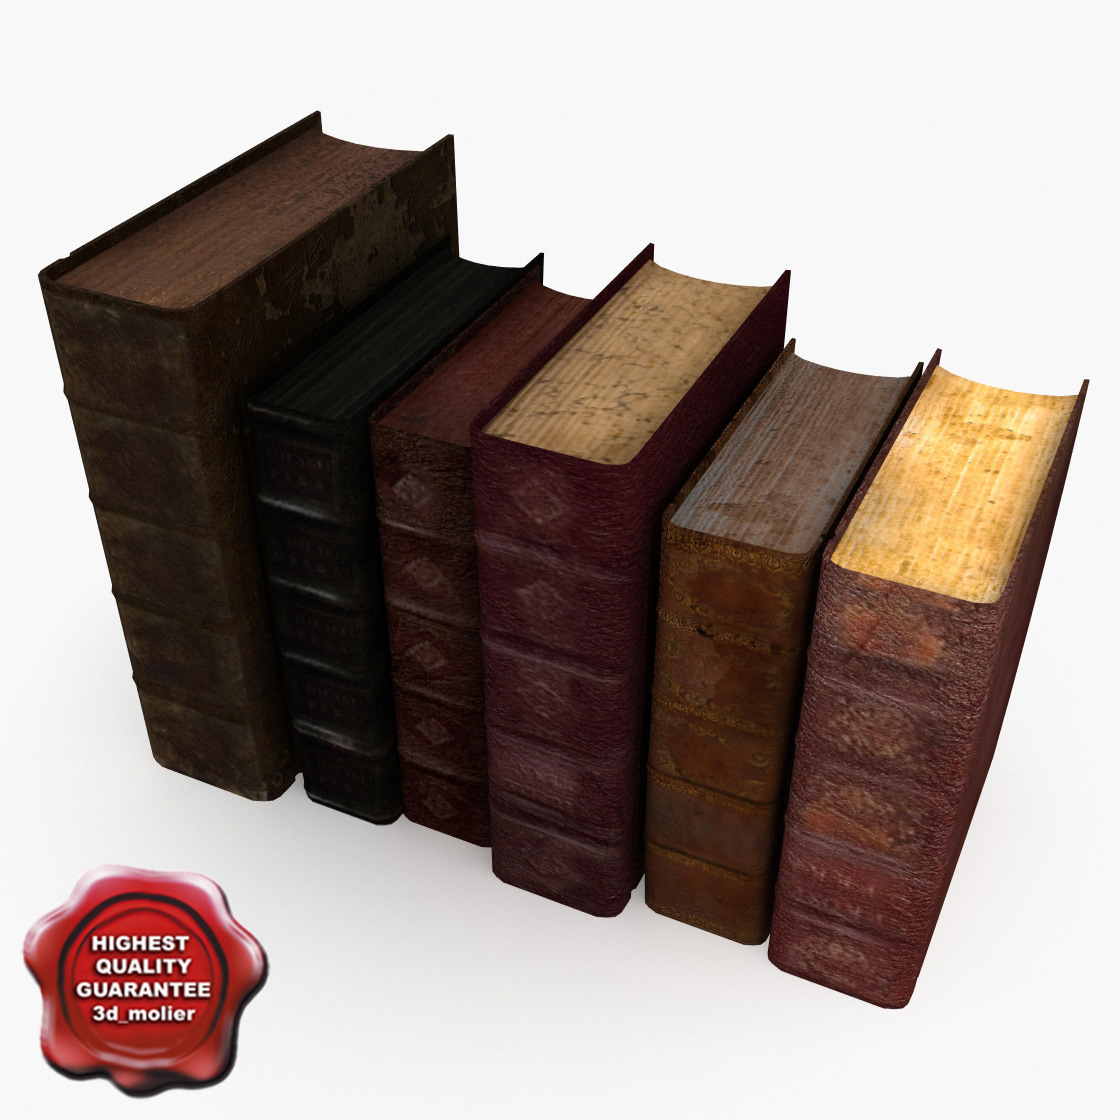 Old_Books_Collection_00.jpg